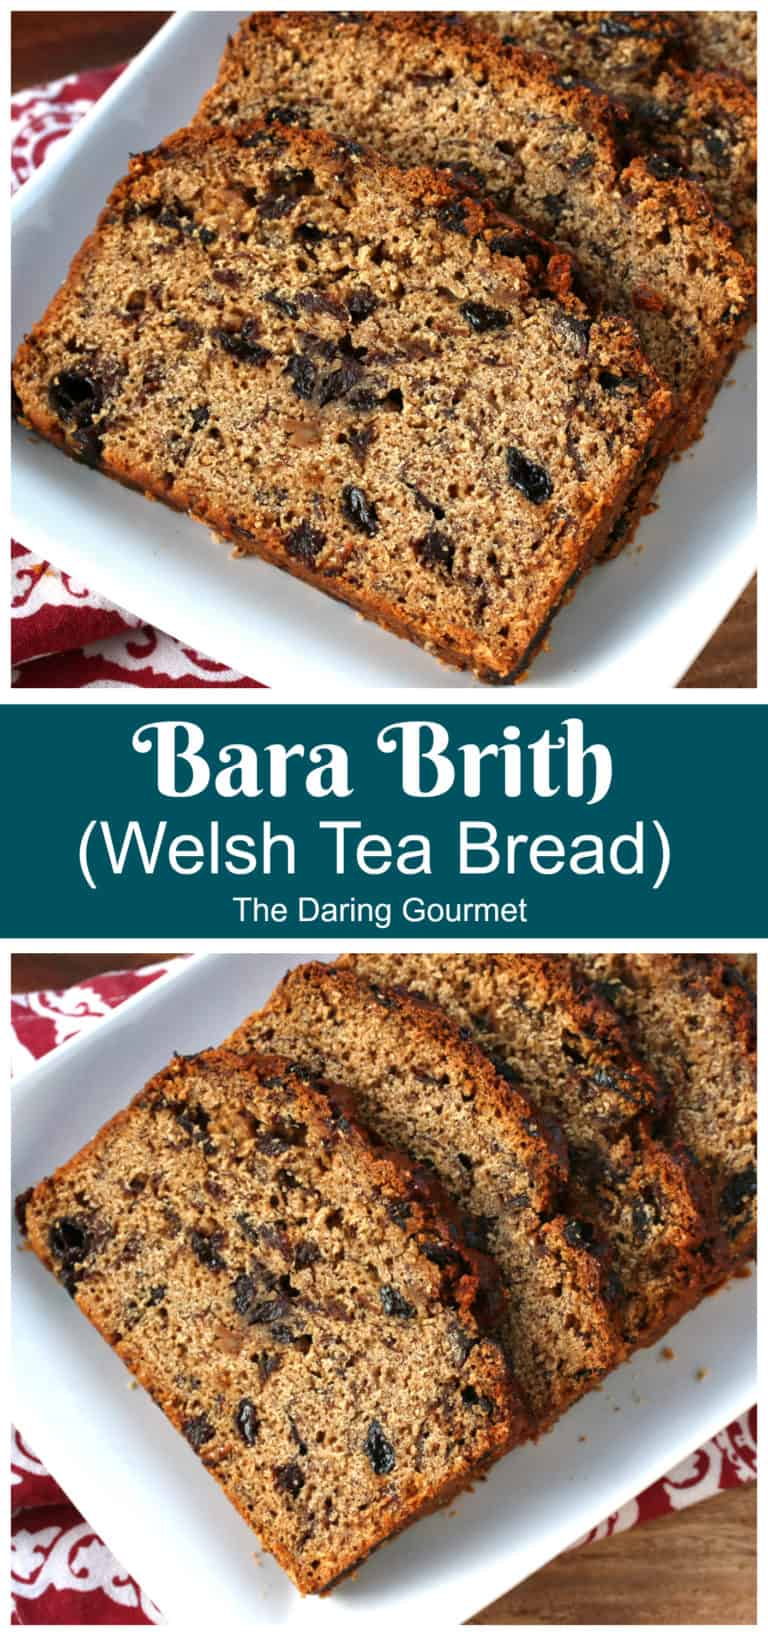 bara brith recipe authentic traditional Welsh tea bread raisins currants candied lemon peel